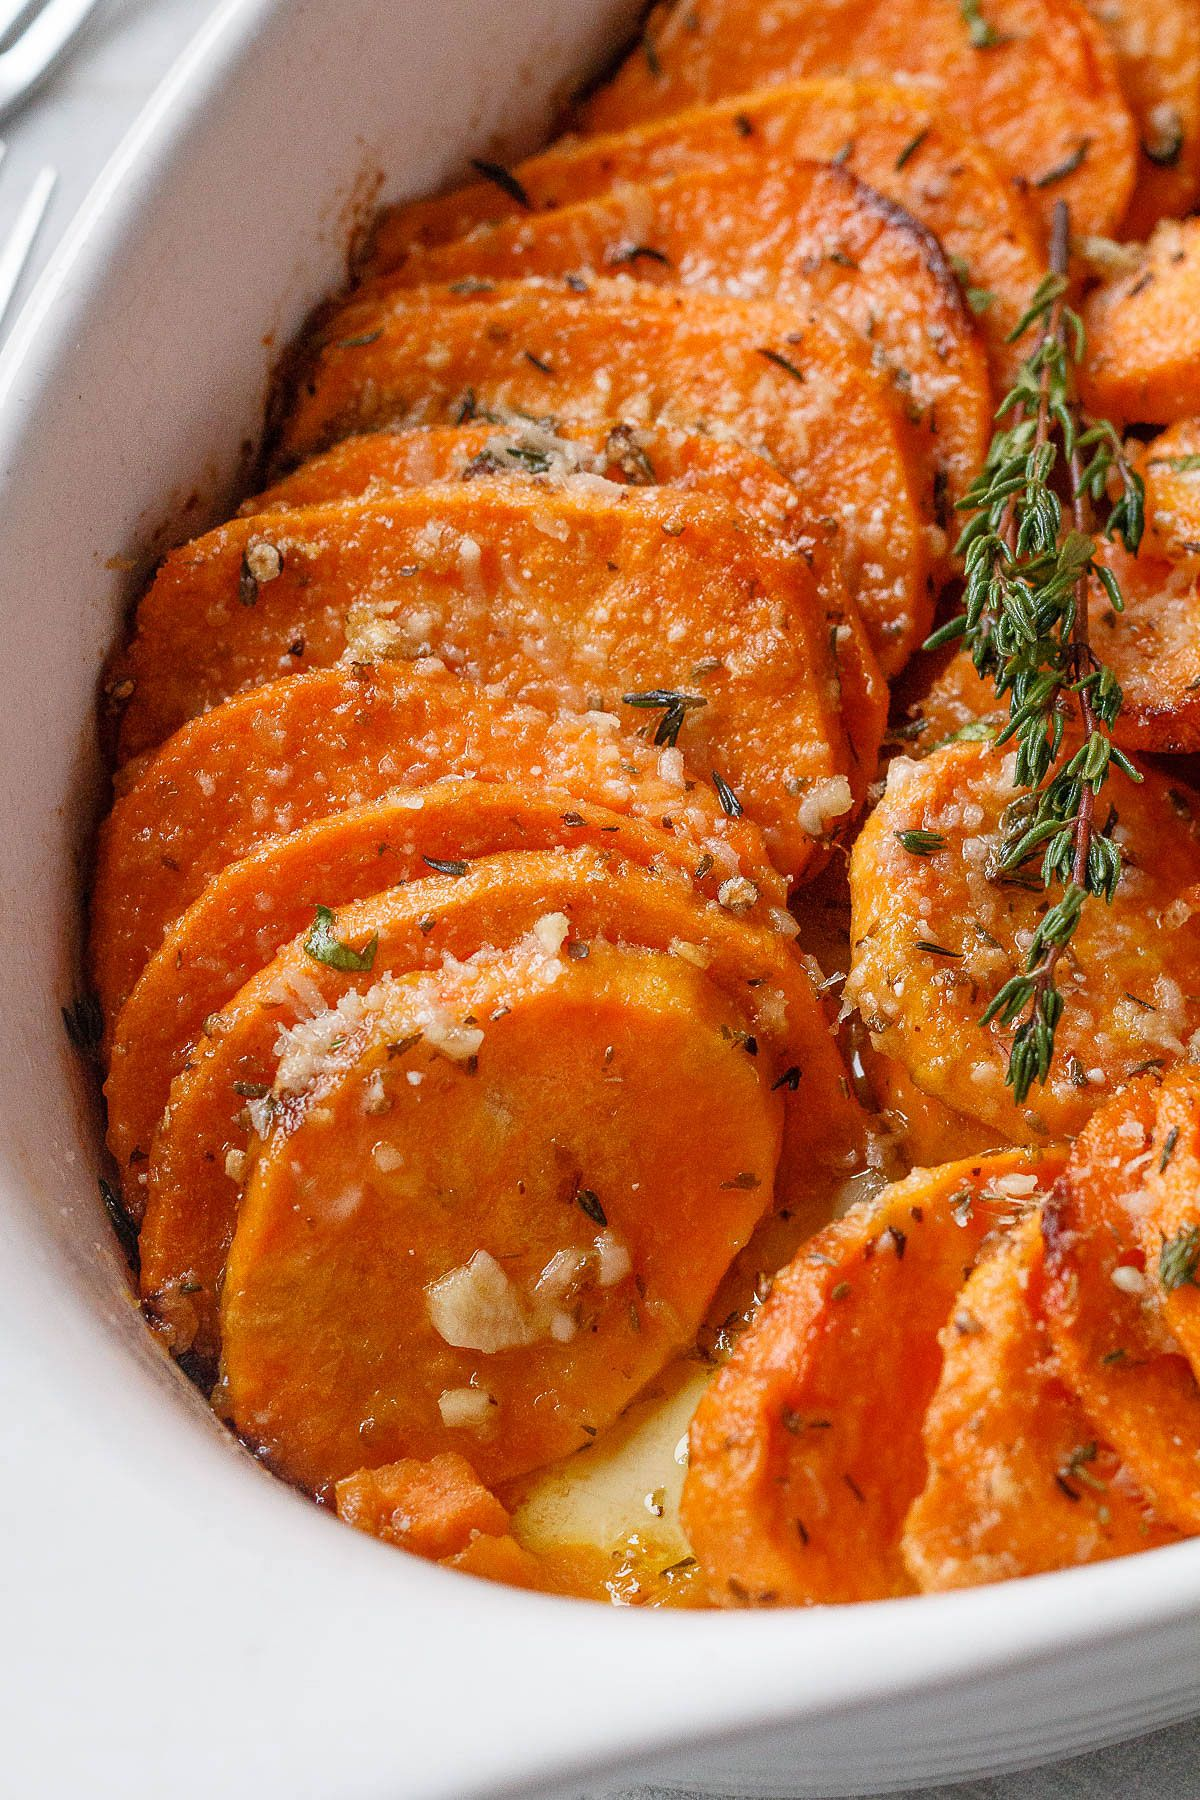 Garlic Parmesan Roasted Sweet Potatoes